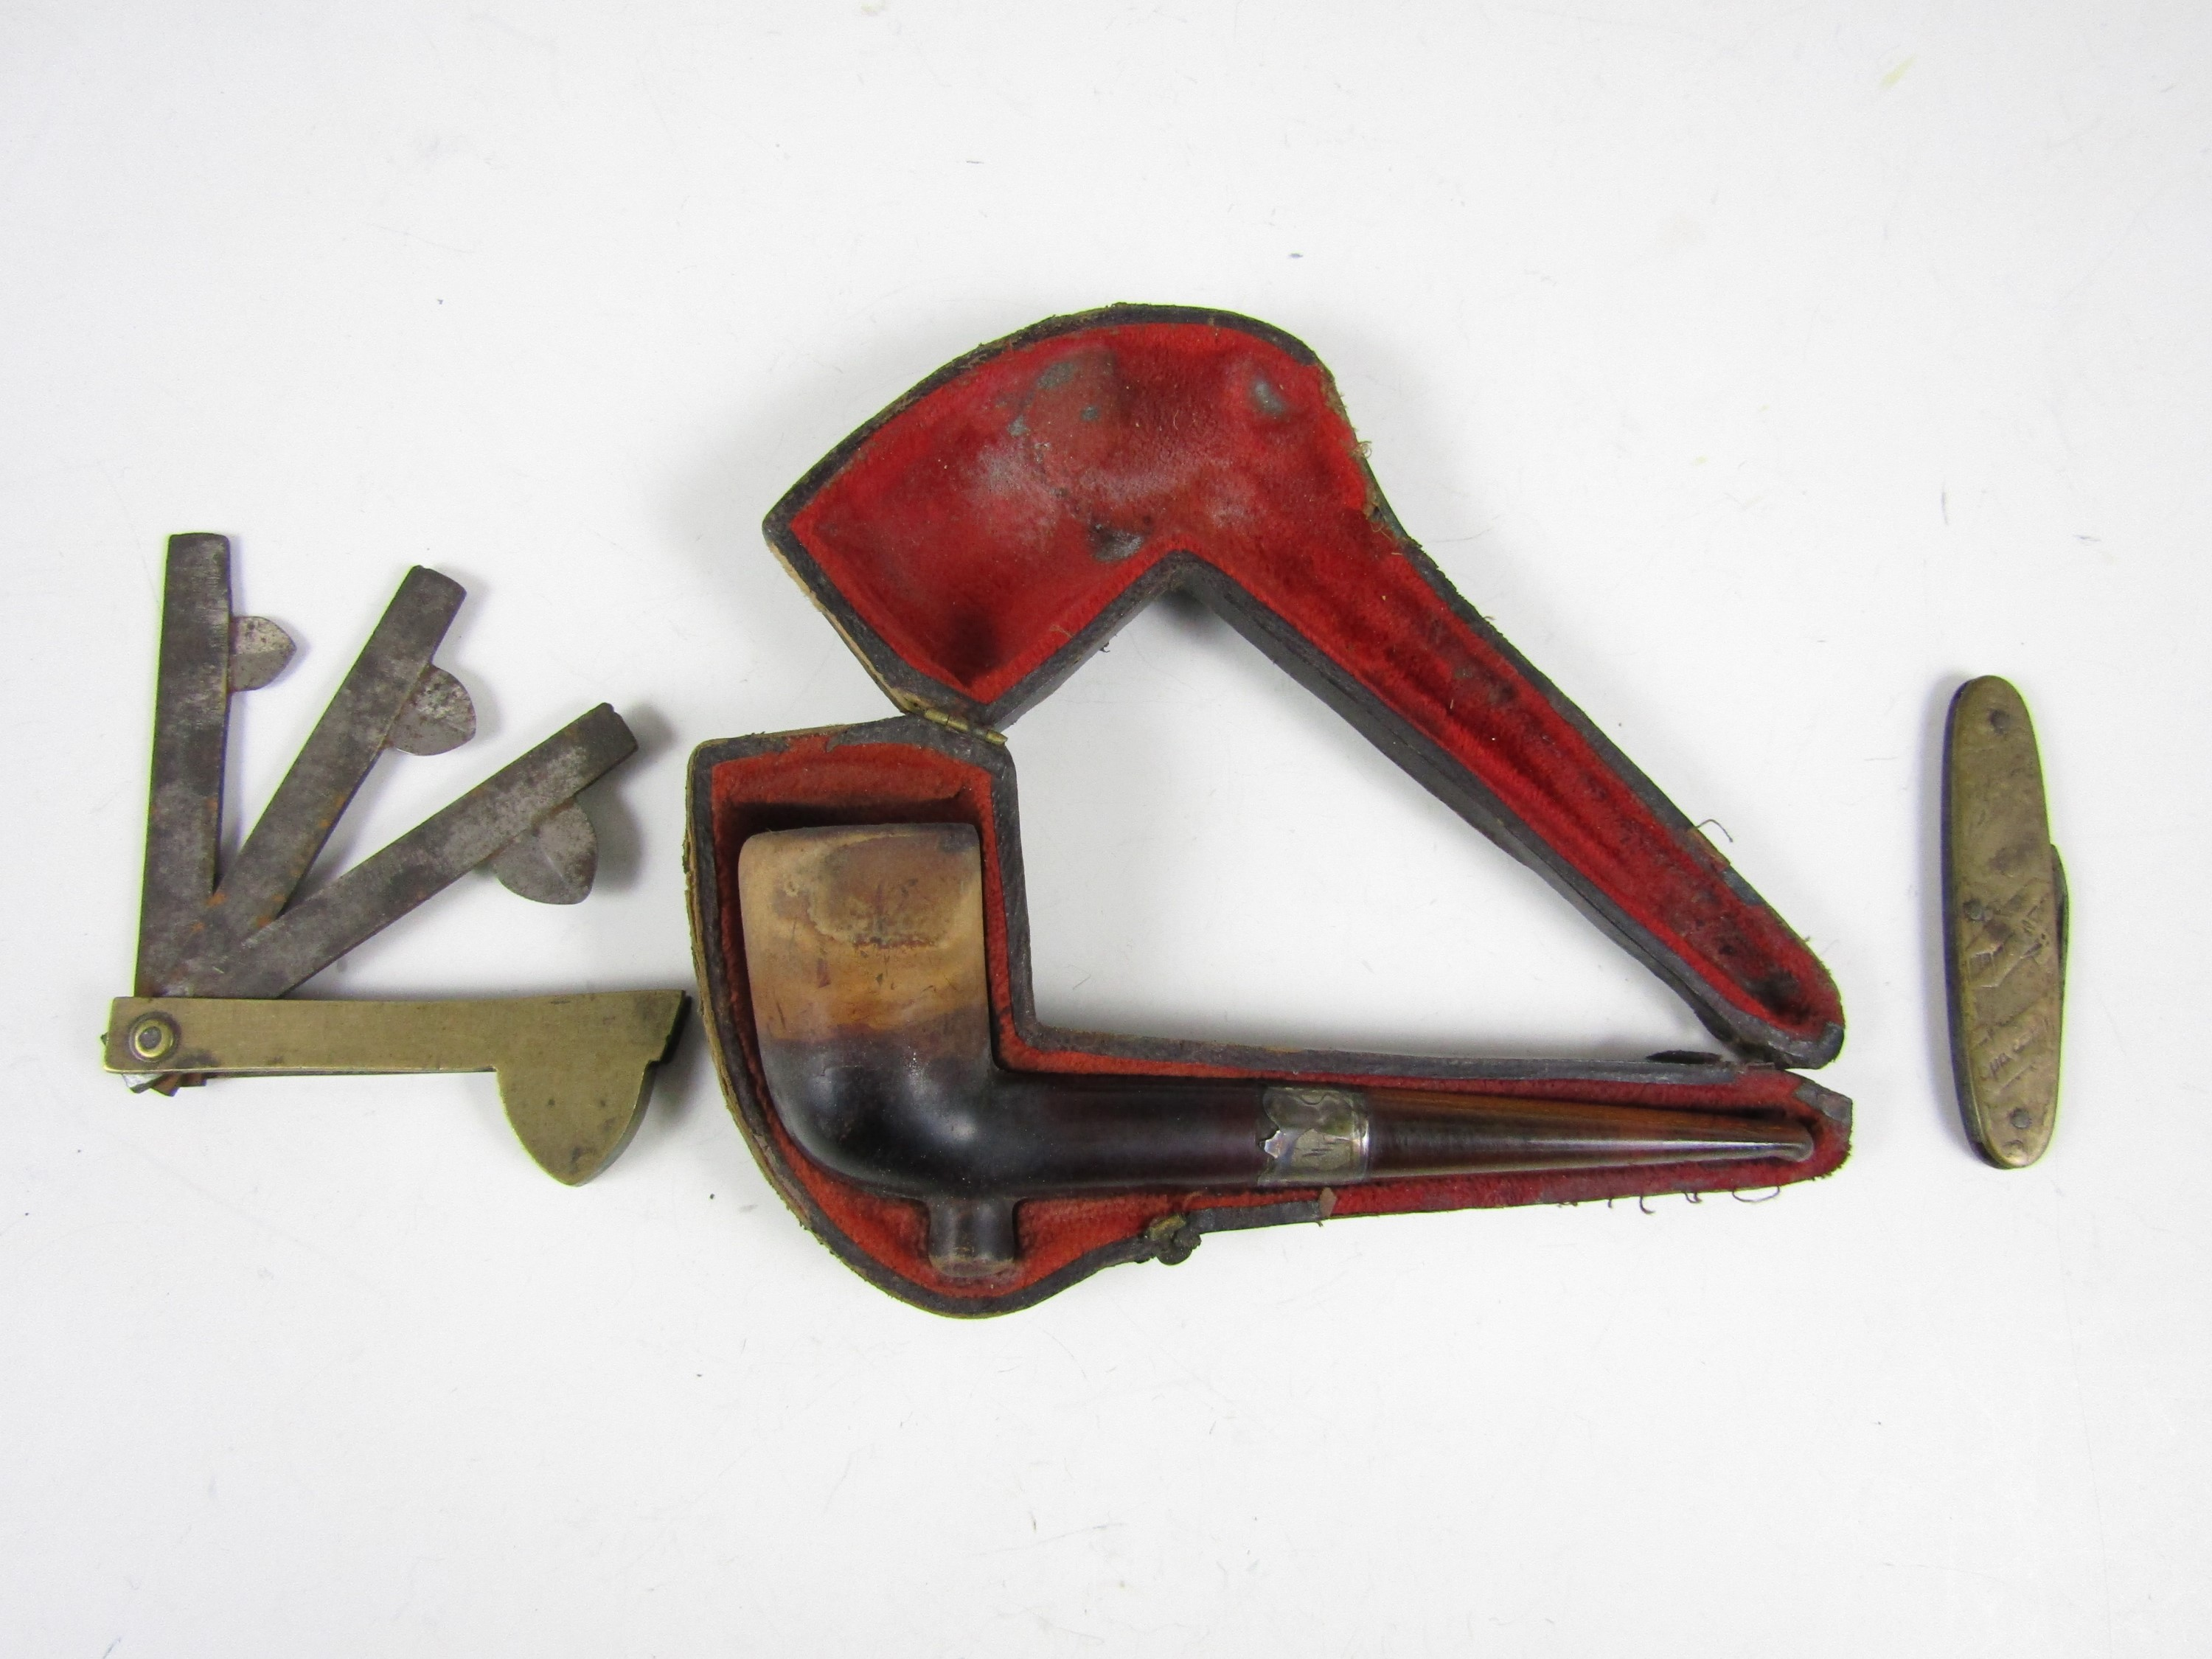 Lot 8 - A Victorian cased meerschaum pipe together with a novelty aviation themed pen knife and a 19th